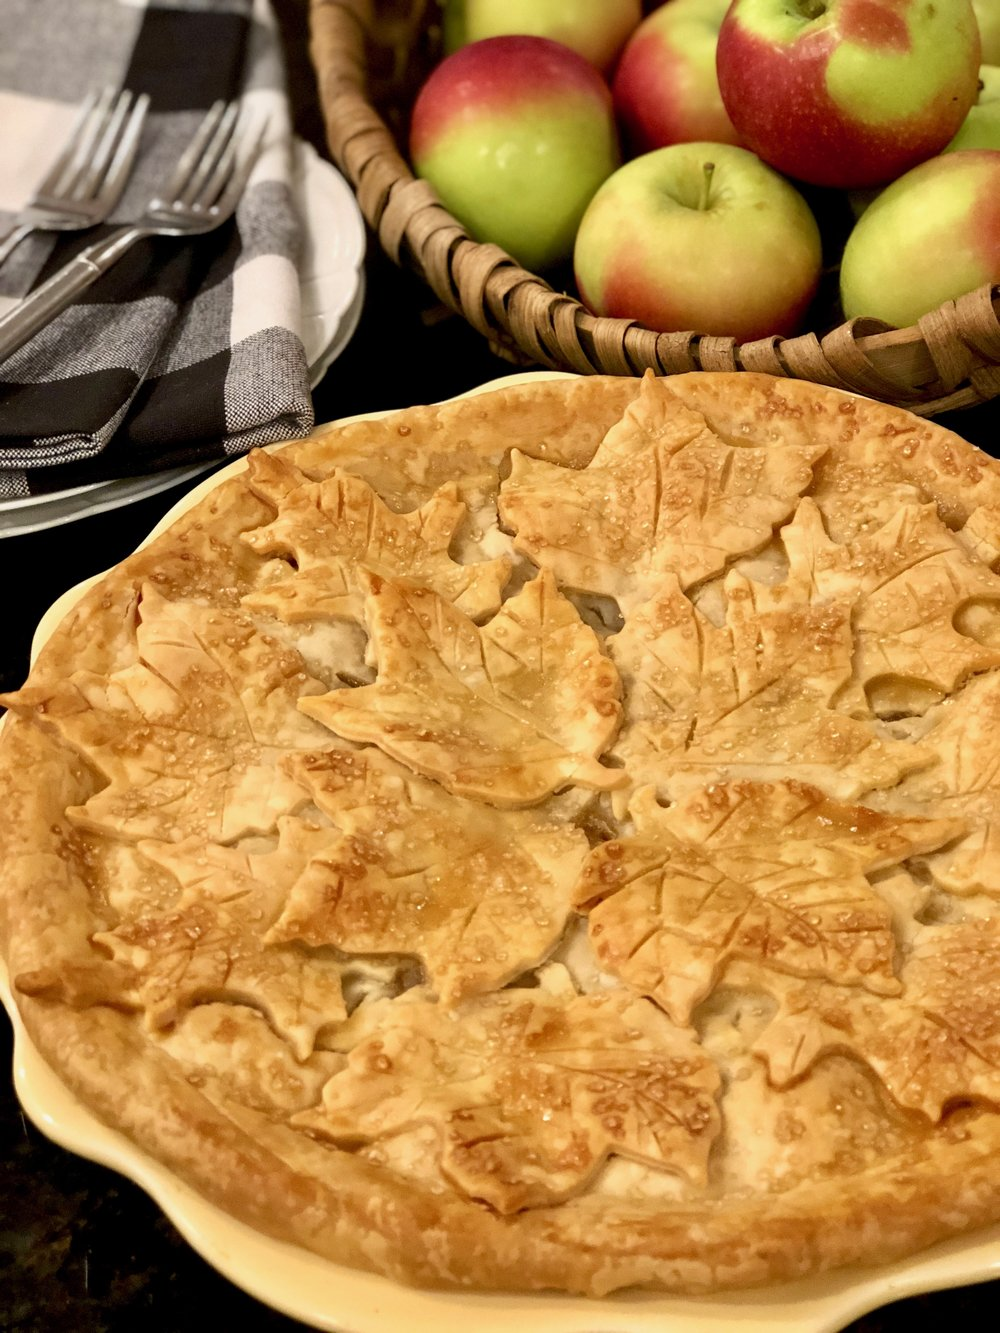 New England apple pie